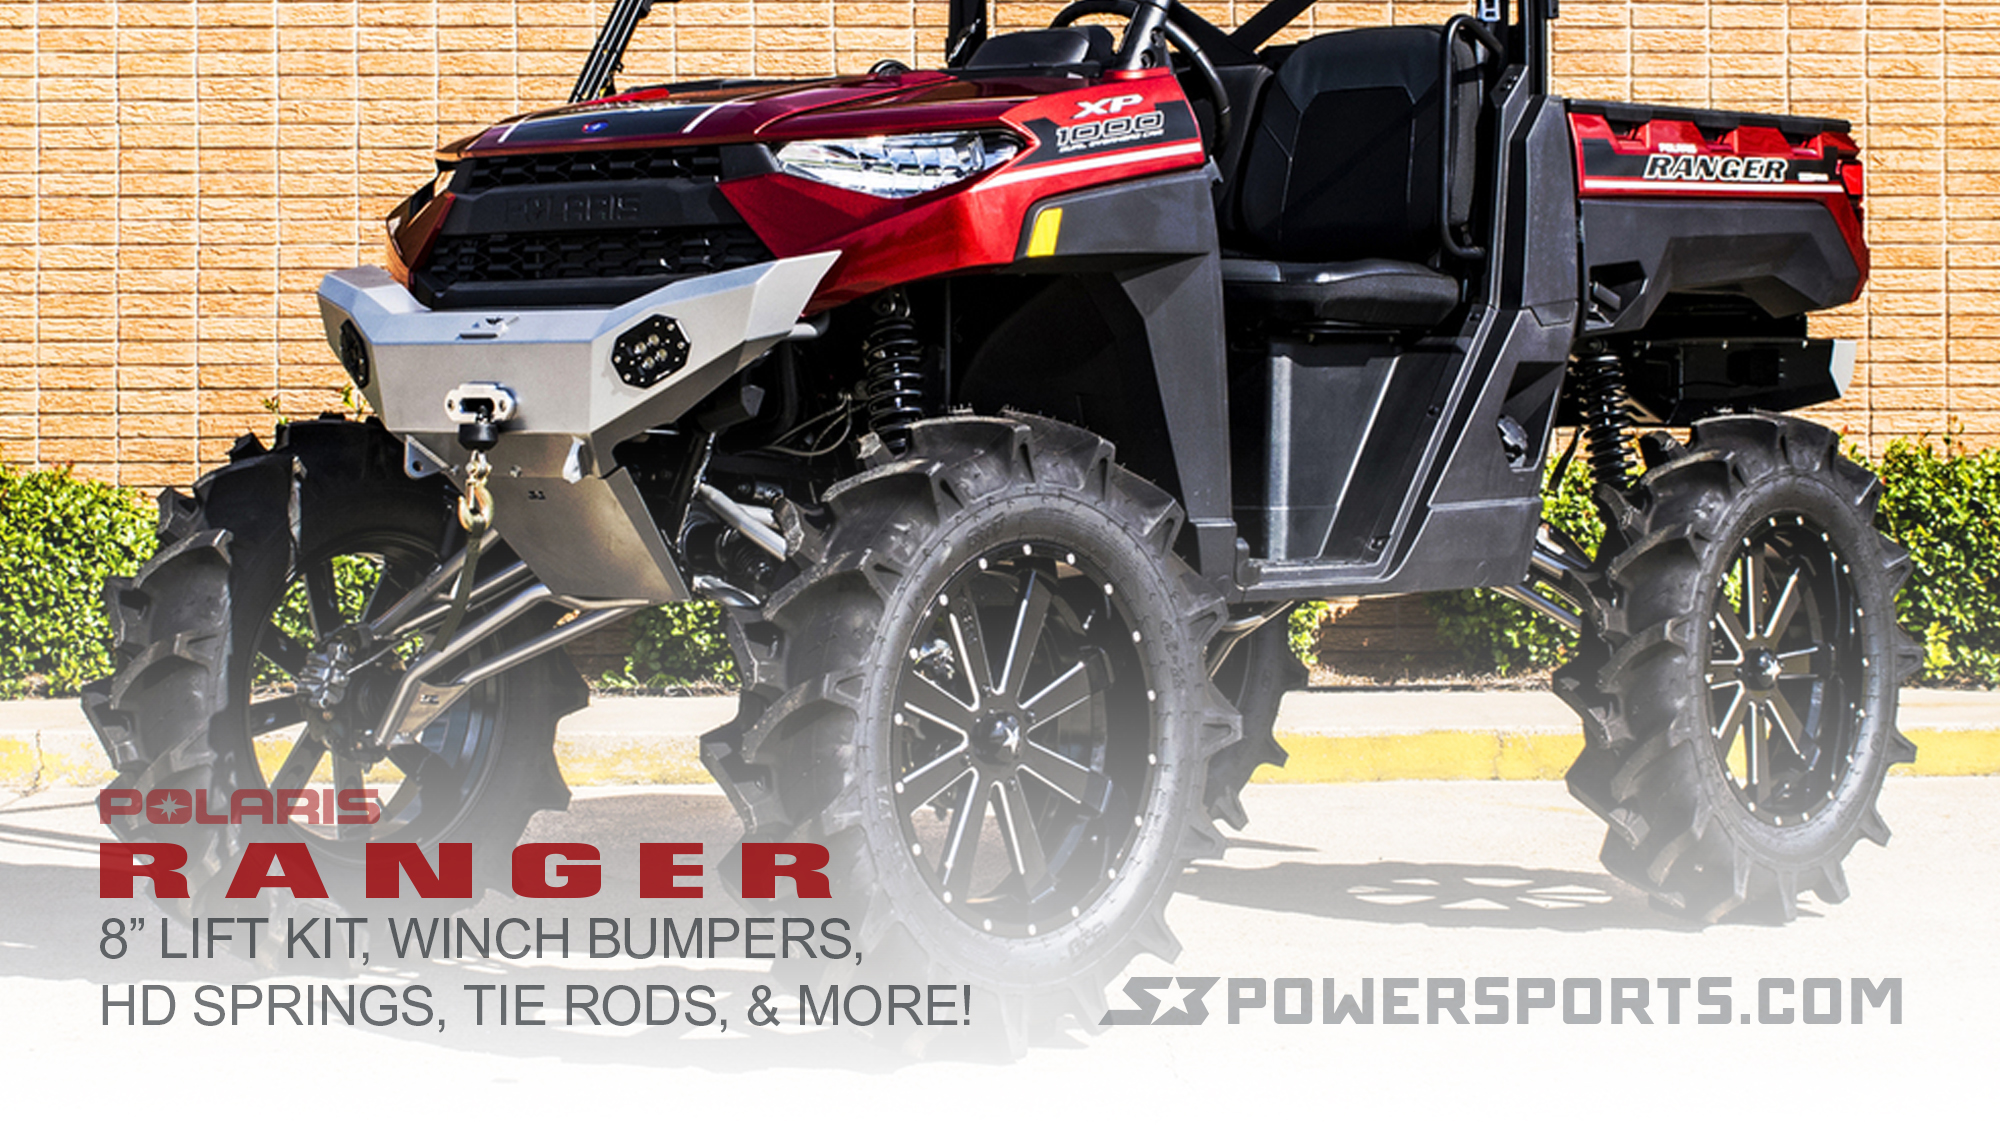 S3 Power Sports - Watch or Be Watched!